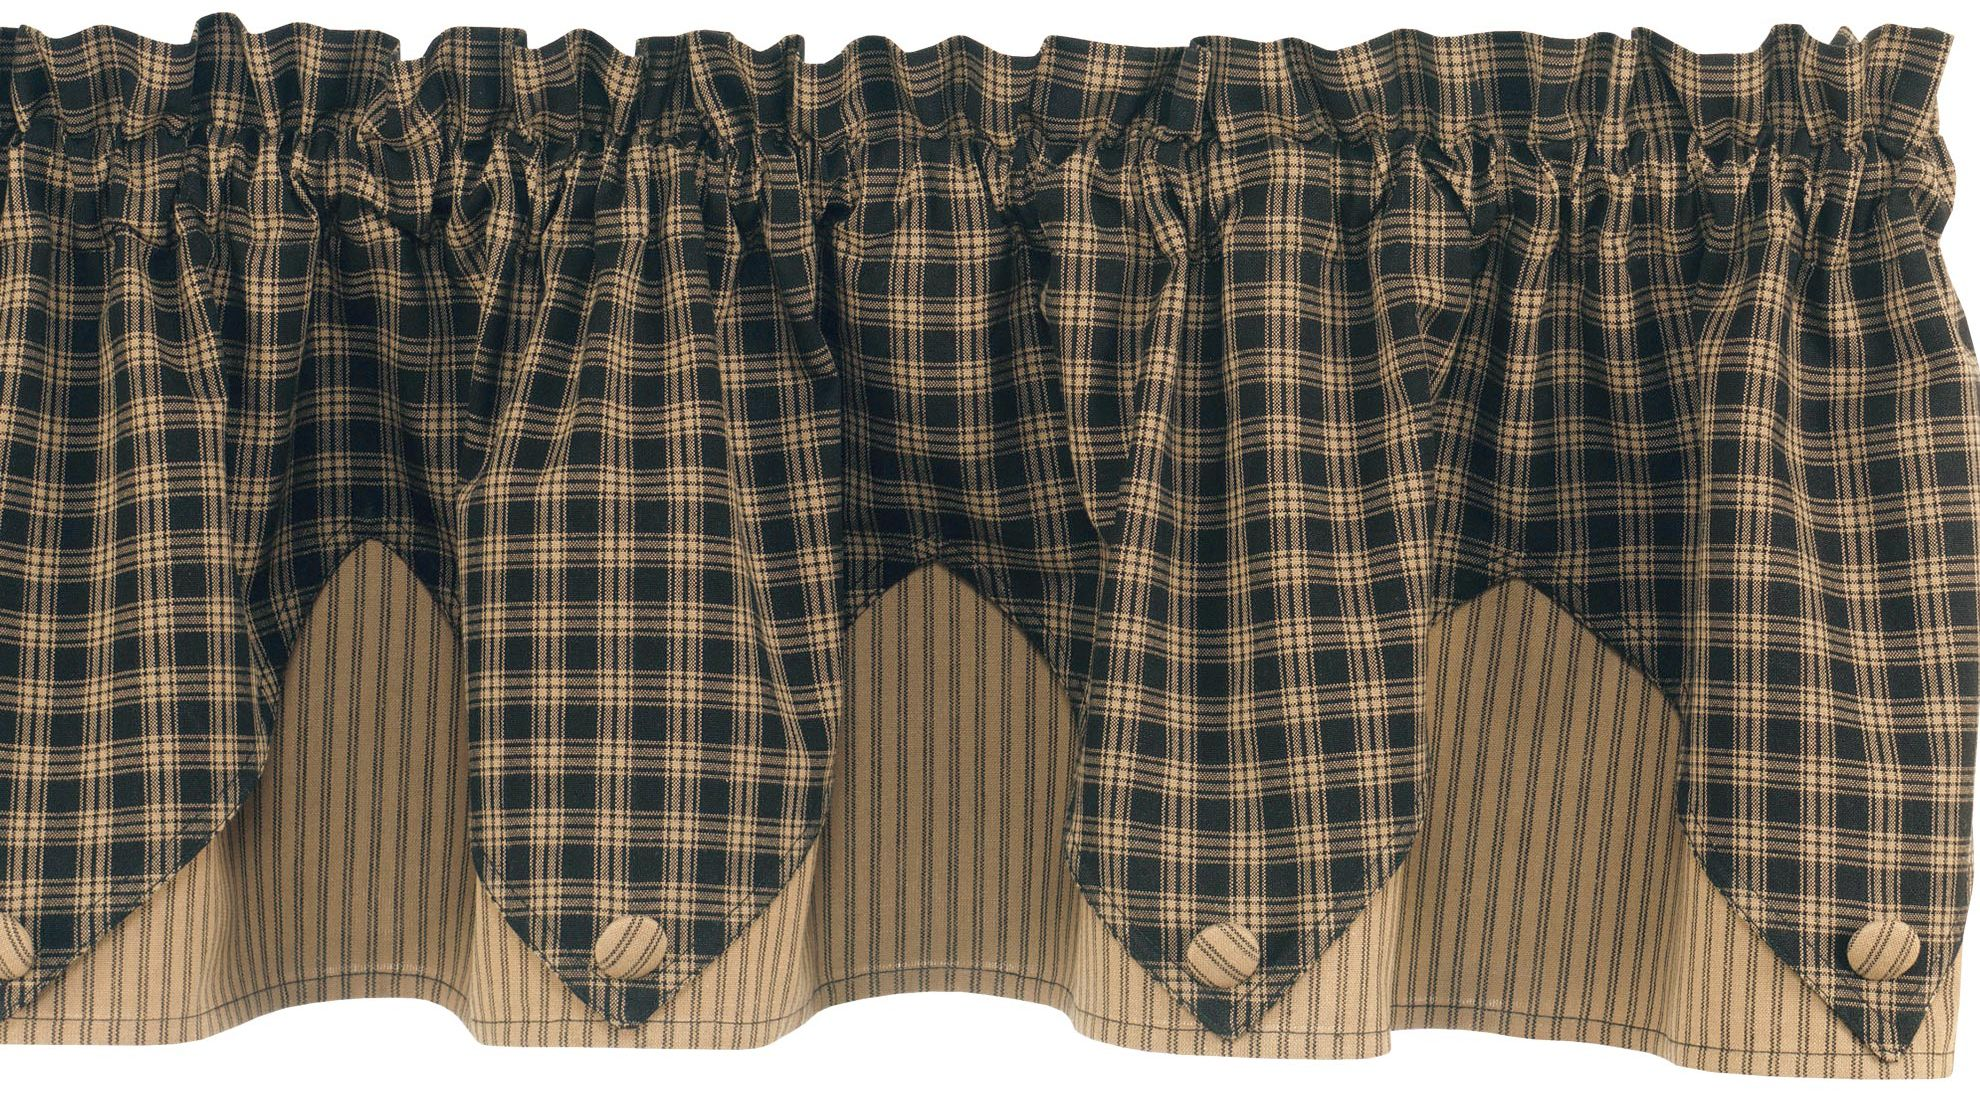 pkd-315-pvl-r-sturbridge-black-point-valance-lrg